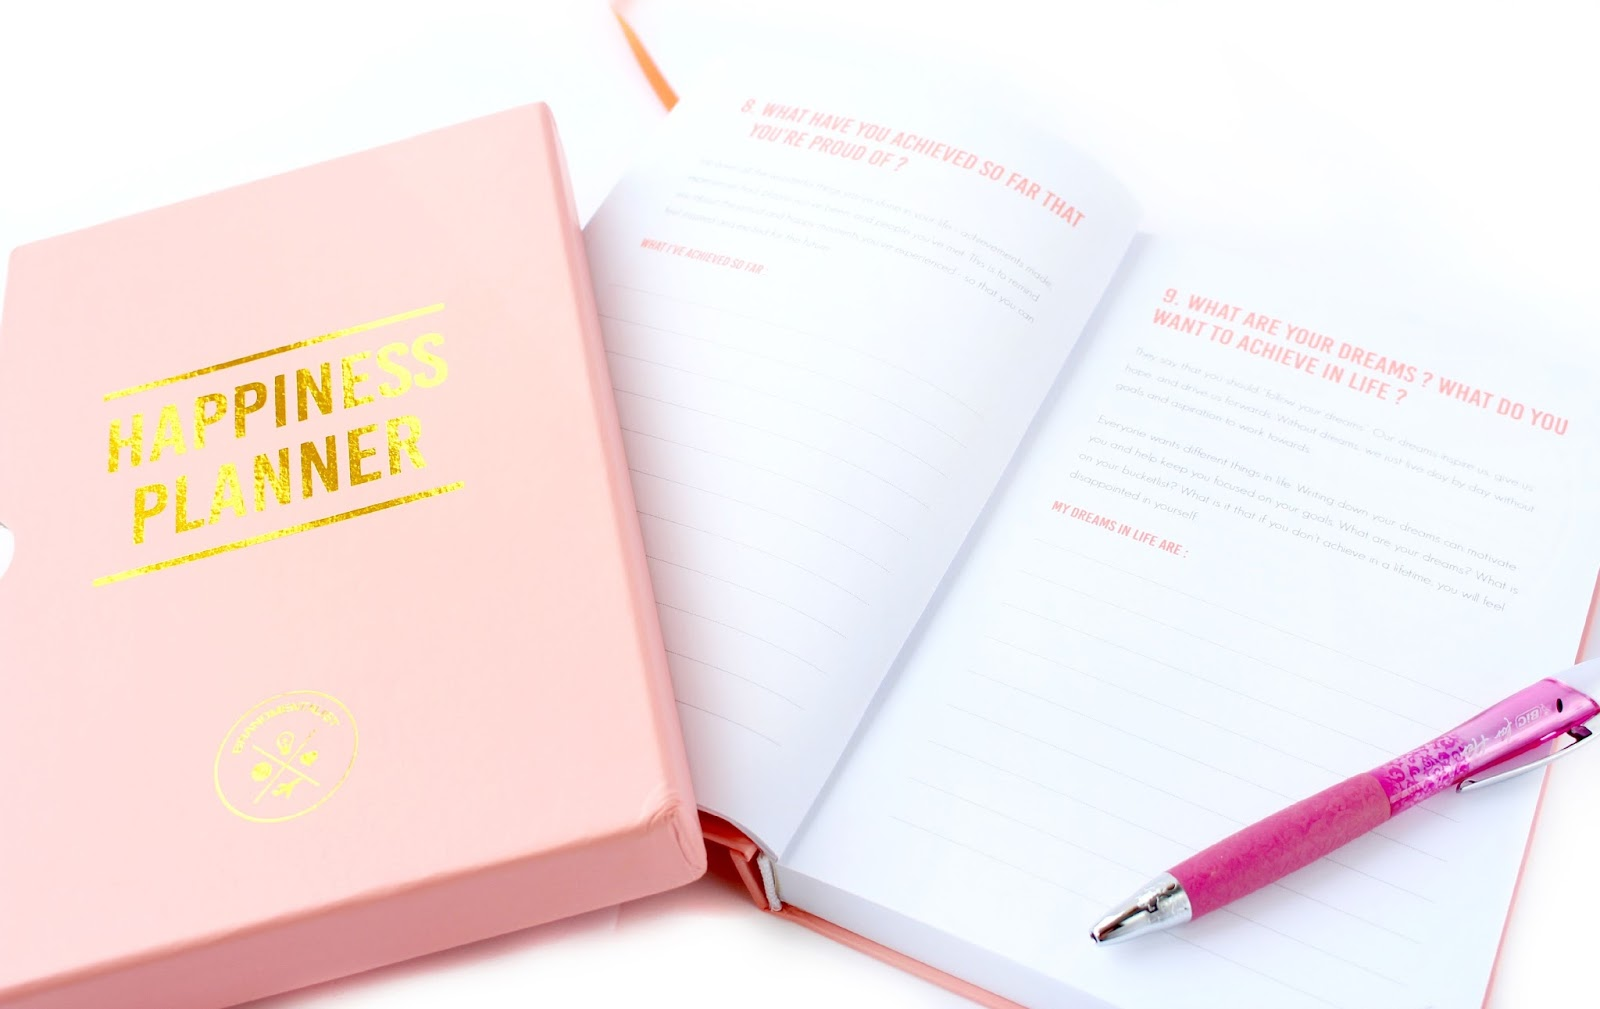 The Happiness Planner Giveaway